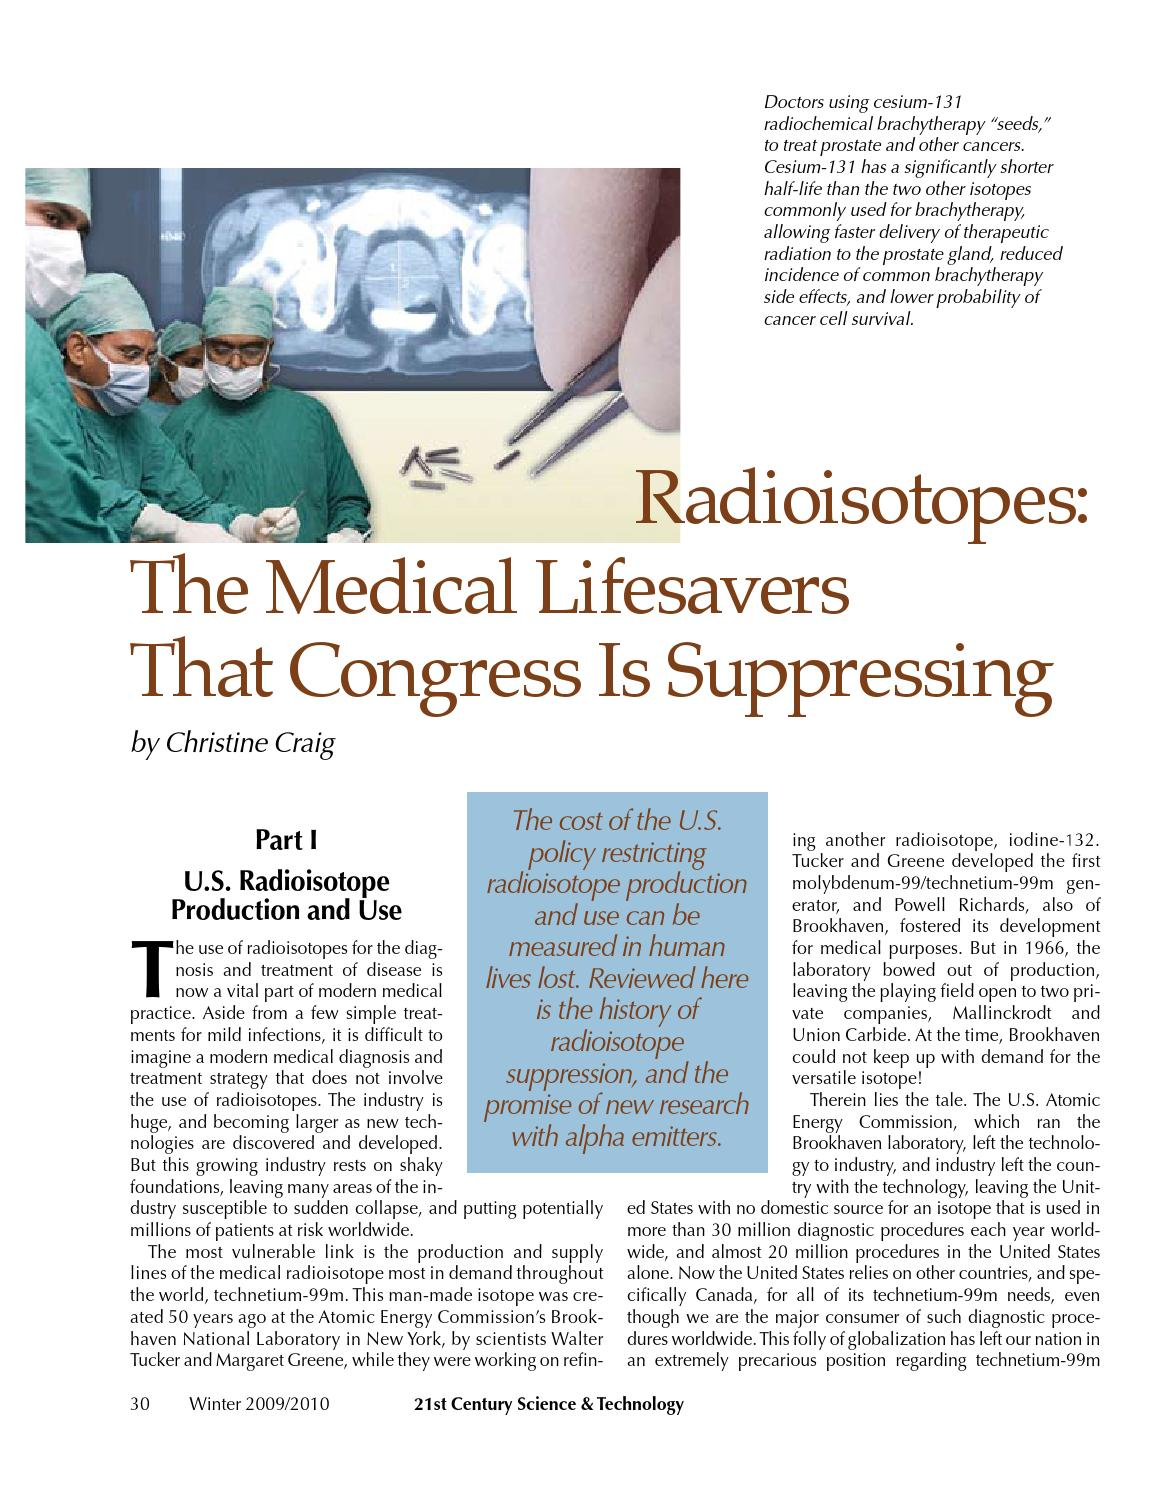 Radioisotopes: Medical Lifesavers That Congress is